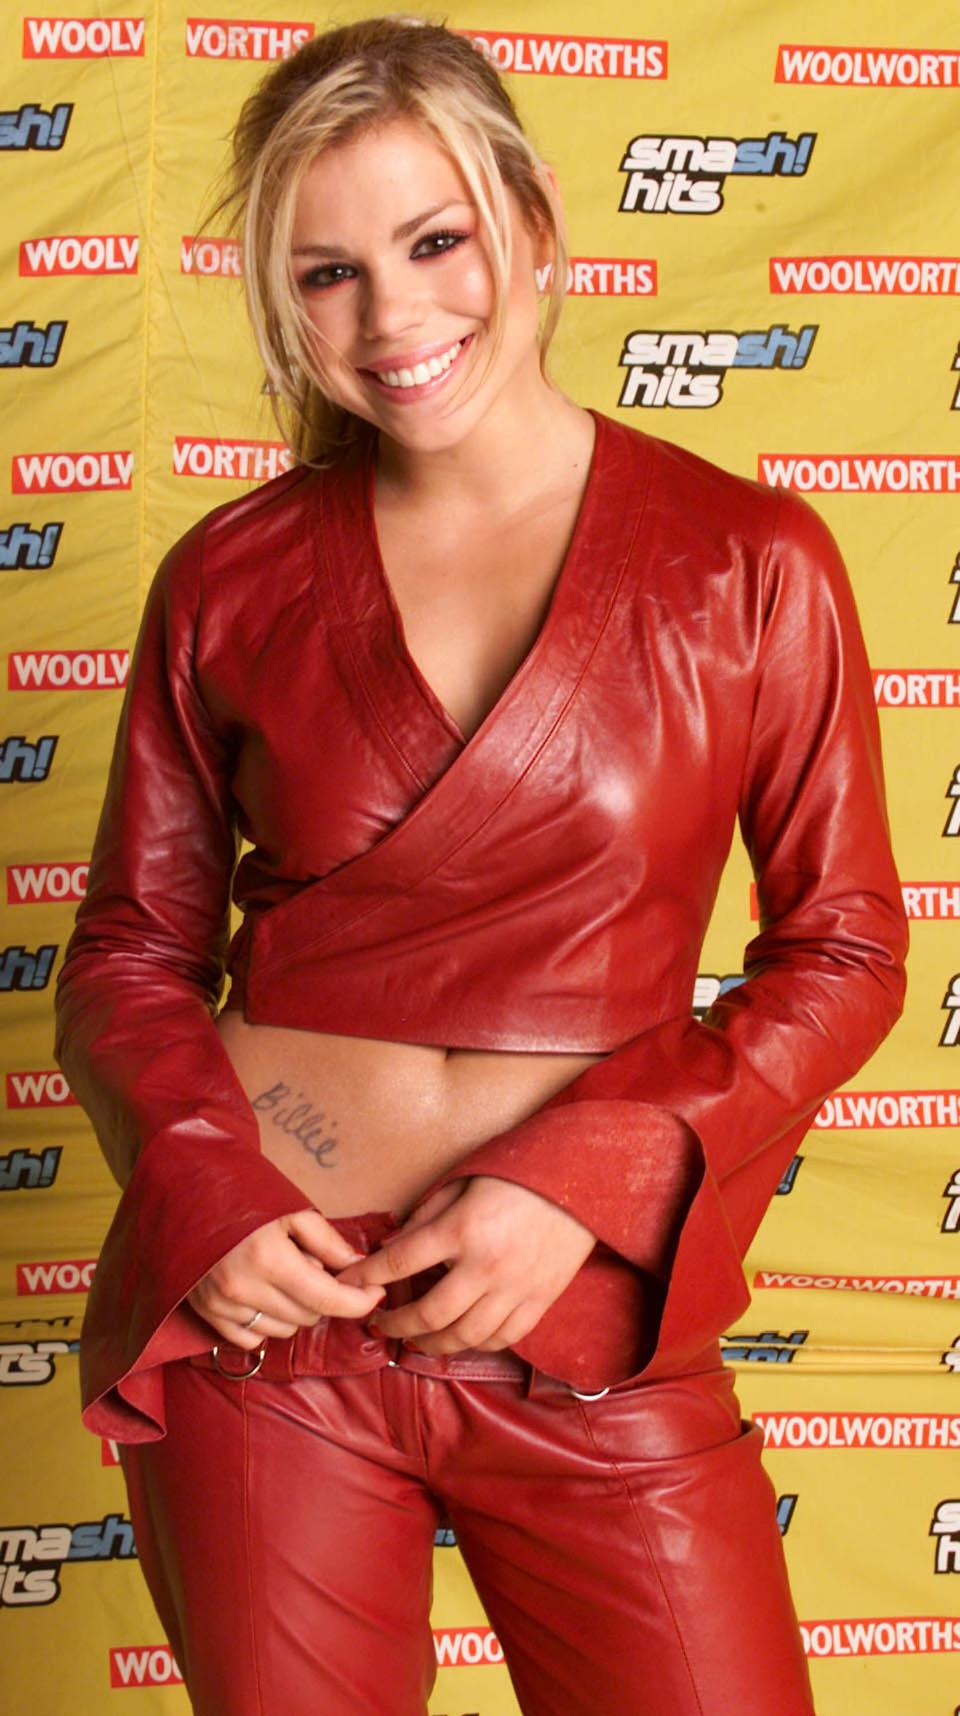 LONDON - DECEMBER 9: British pop star Billie Piper poses backstage after performing at the Smash Hits Poll Winners Party held at the London Docklands Arena on December 9, 2001 in London. (Photo by Dave Hogan/Getty Images)